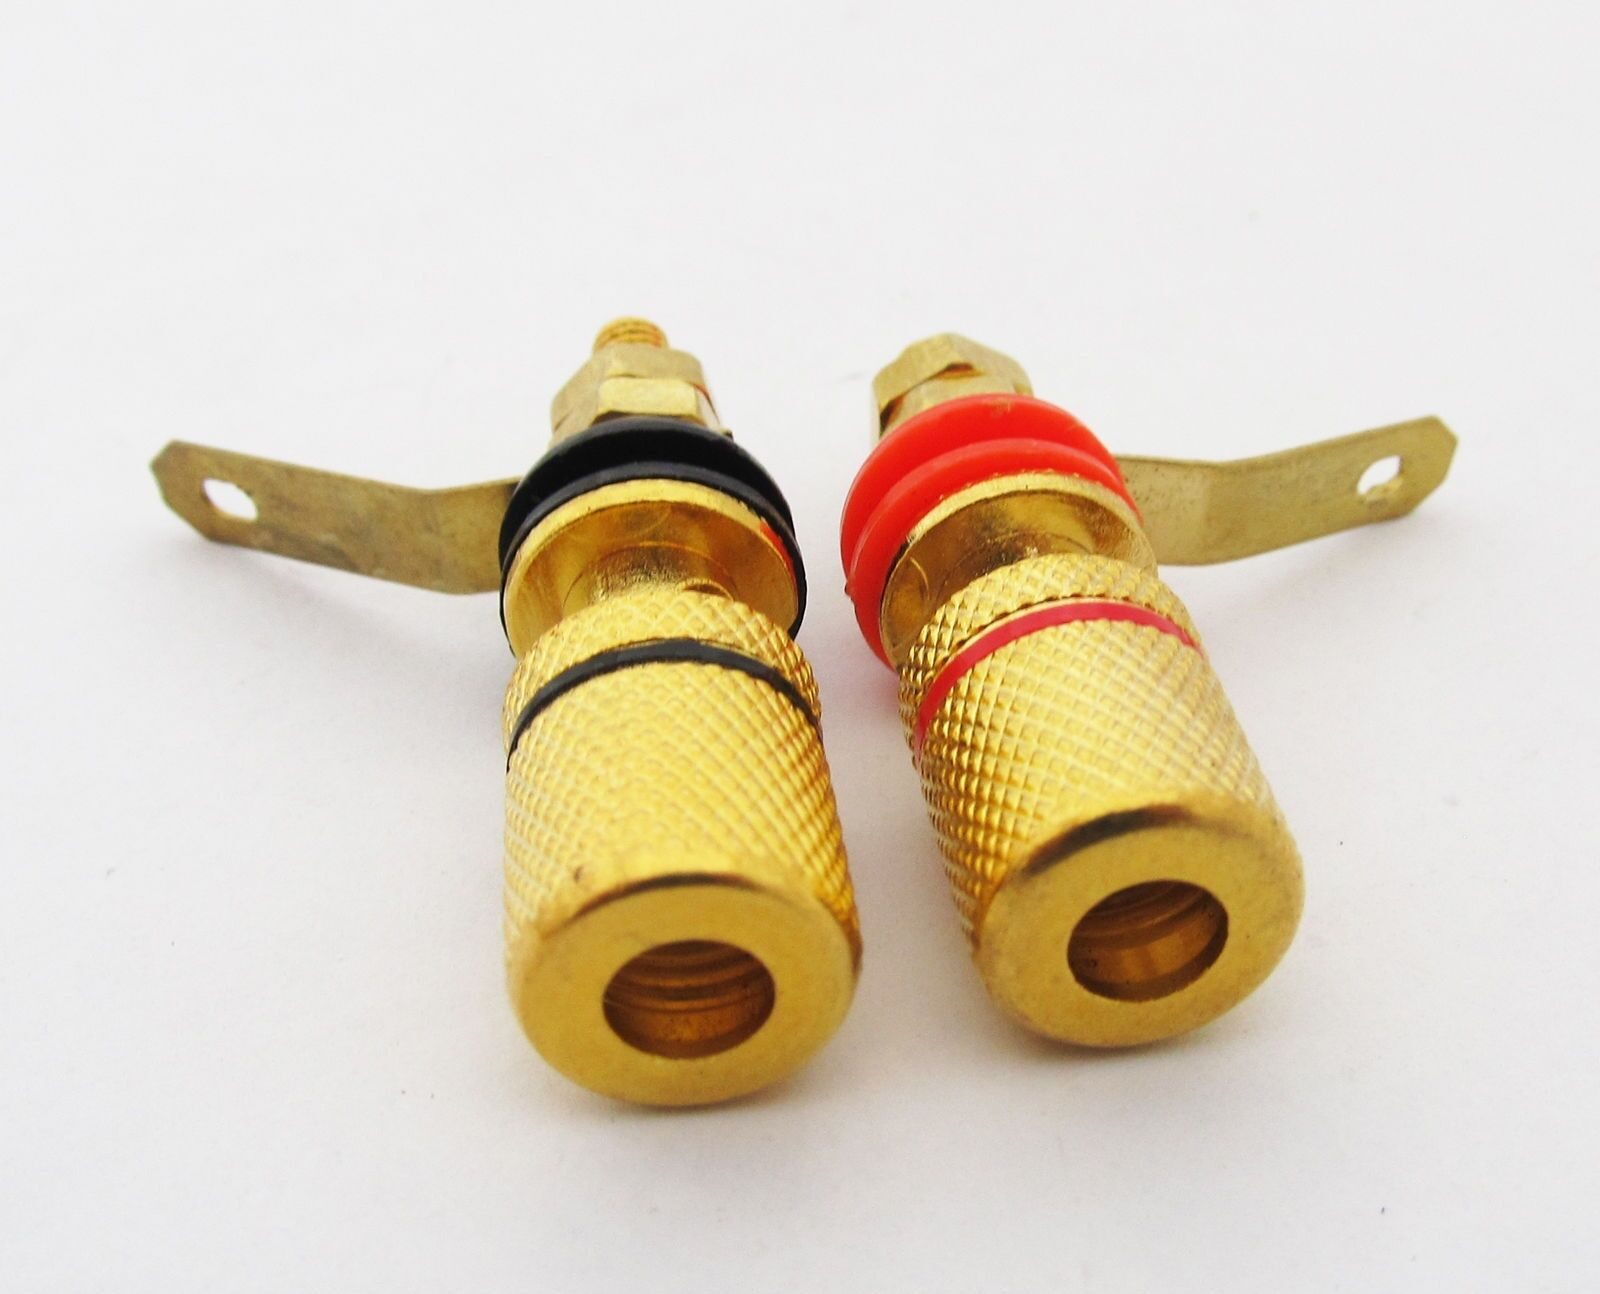 5x Binding Post Speaker Cable Amplifier 4mm Banana Plug Jack Connector 5 Colors